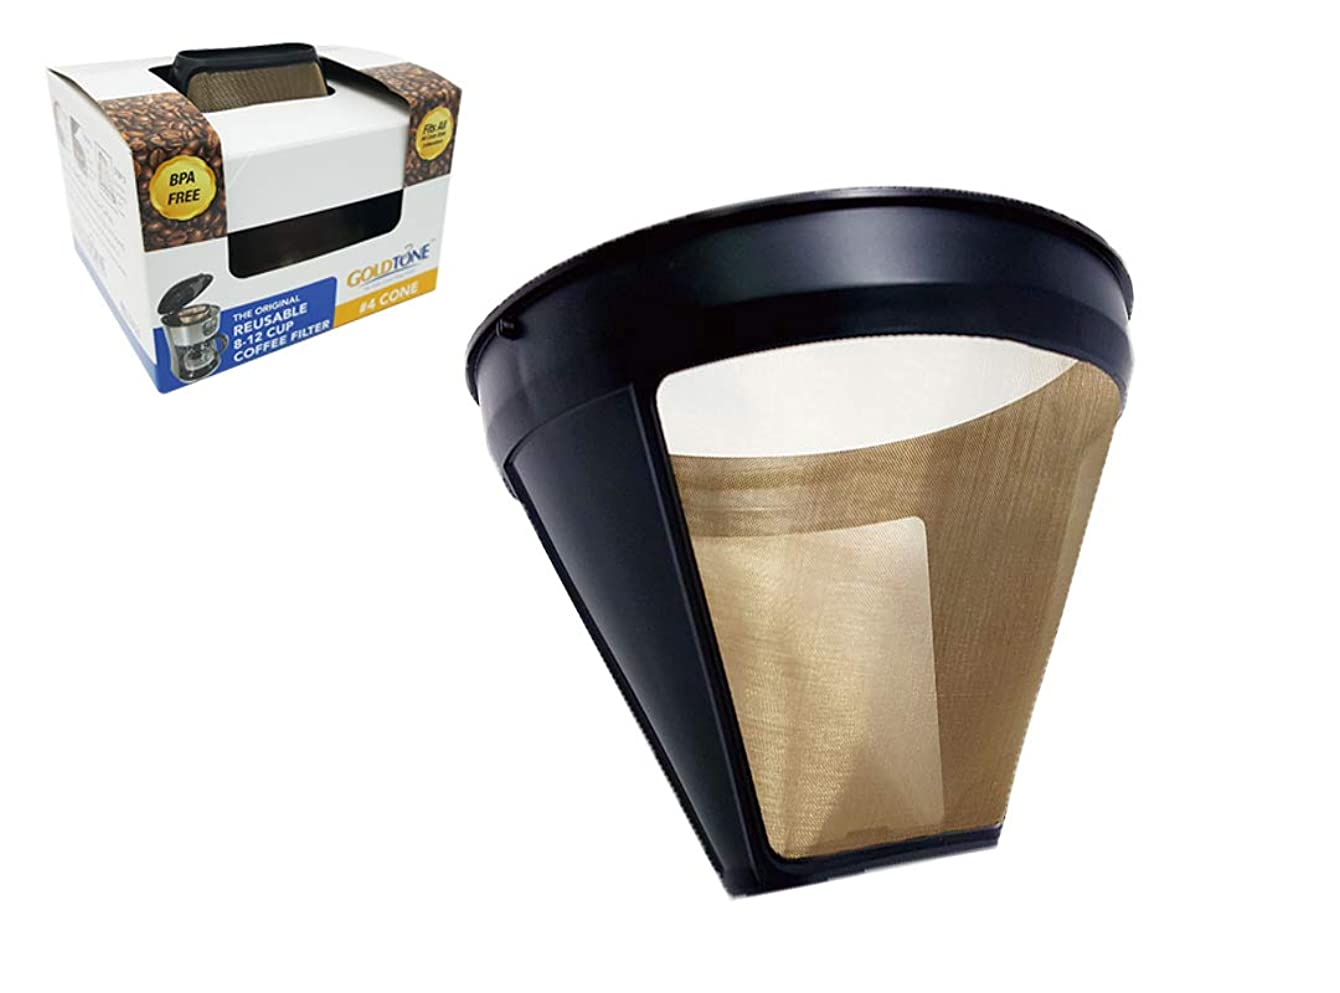 GOLDTONE Reusable #4 Cone Style KRUPS Reusable Coffee Filter Replaces Your F05342 Permananet Coffee Filter for KRUPS Machines and Brewers